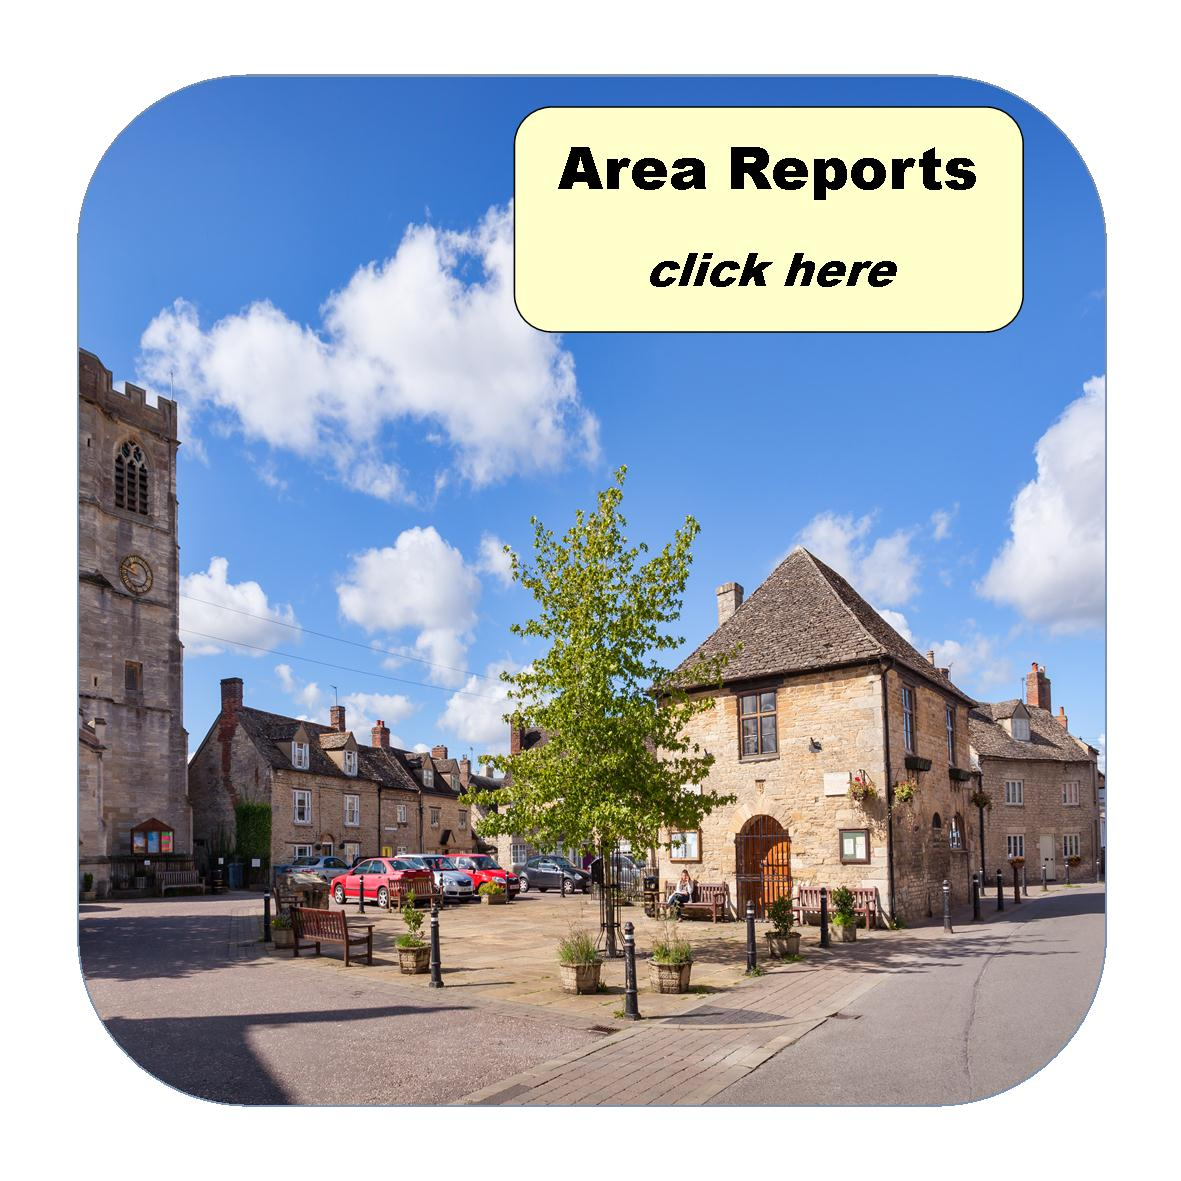 W Ox Area Reports